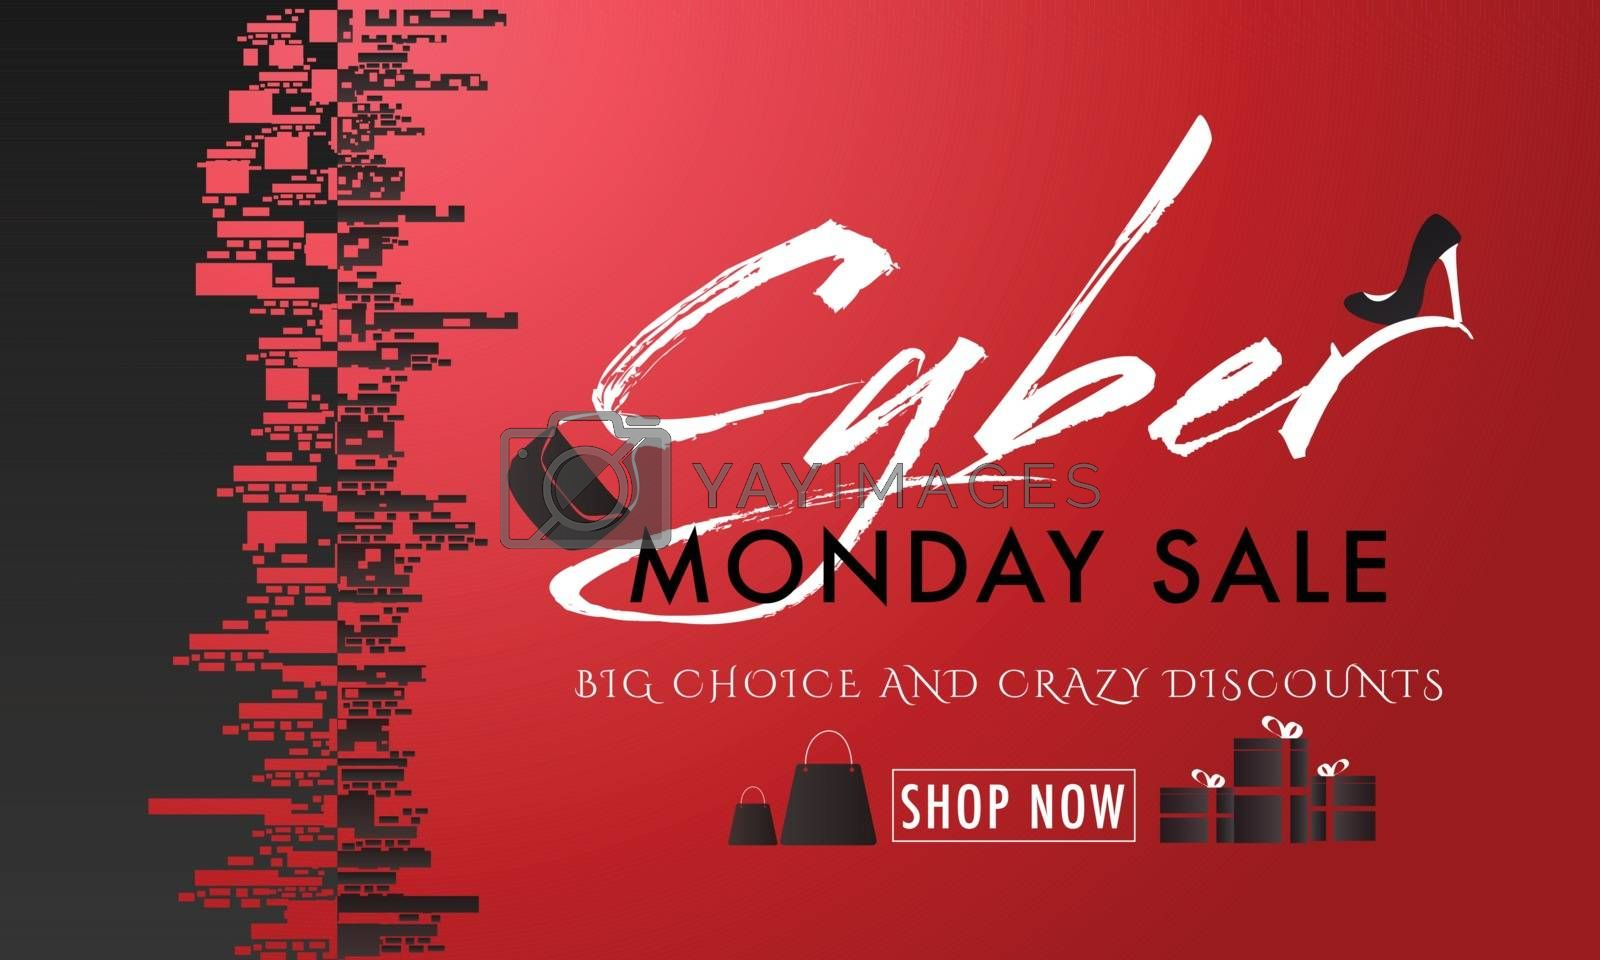 Big Choice Crazy Discount Offers on Cyber Monday Sale. Creative header, advertisement banner or promotional poster design.